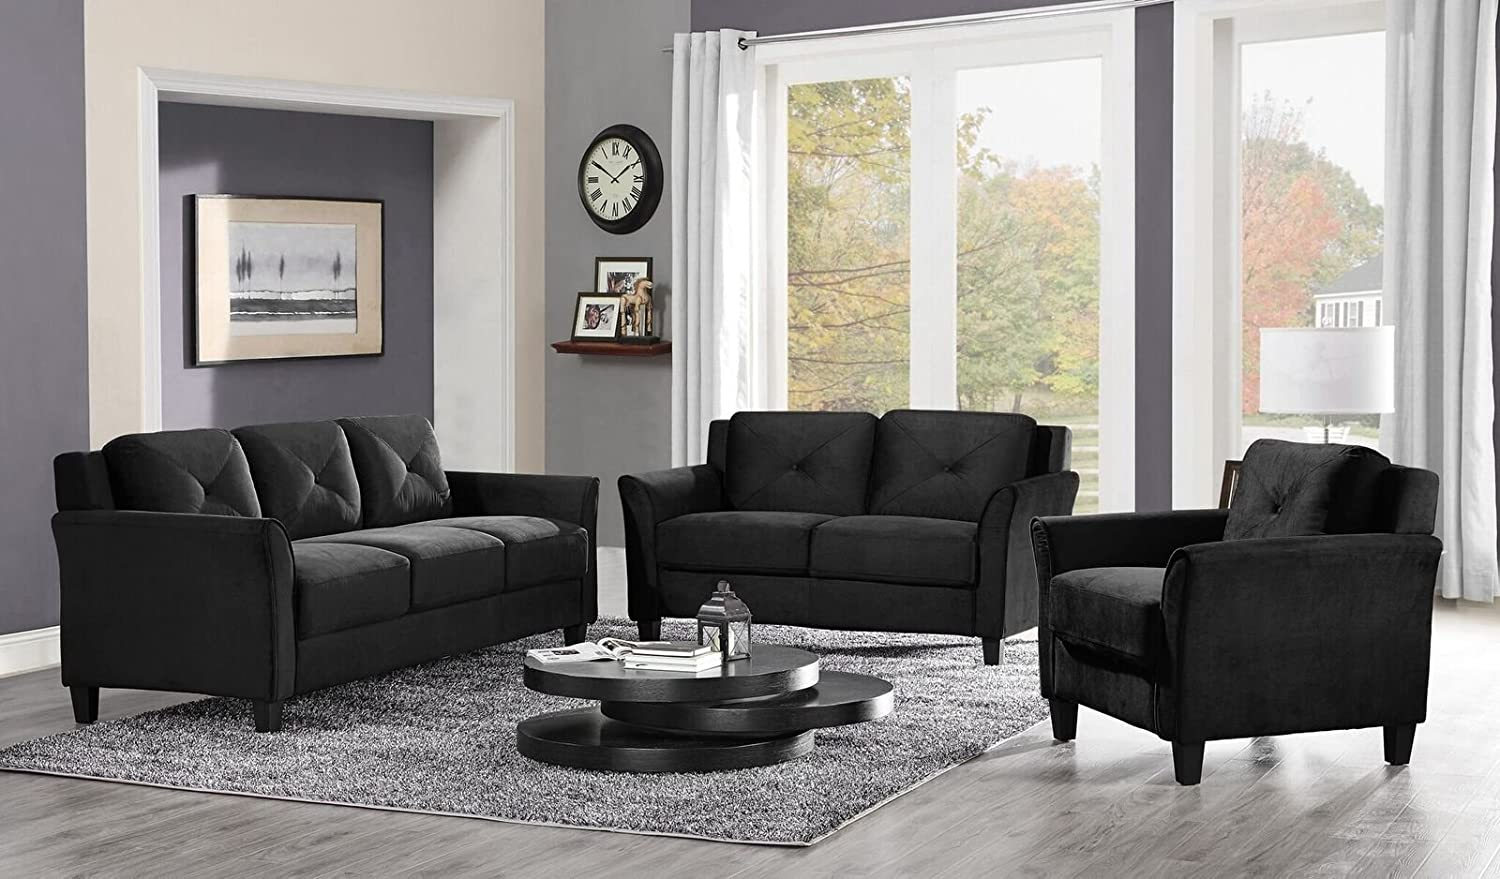 Amazon.com: Pearington Merango Microfiber Living Room Sofa, Black ...